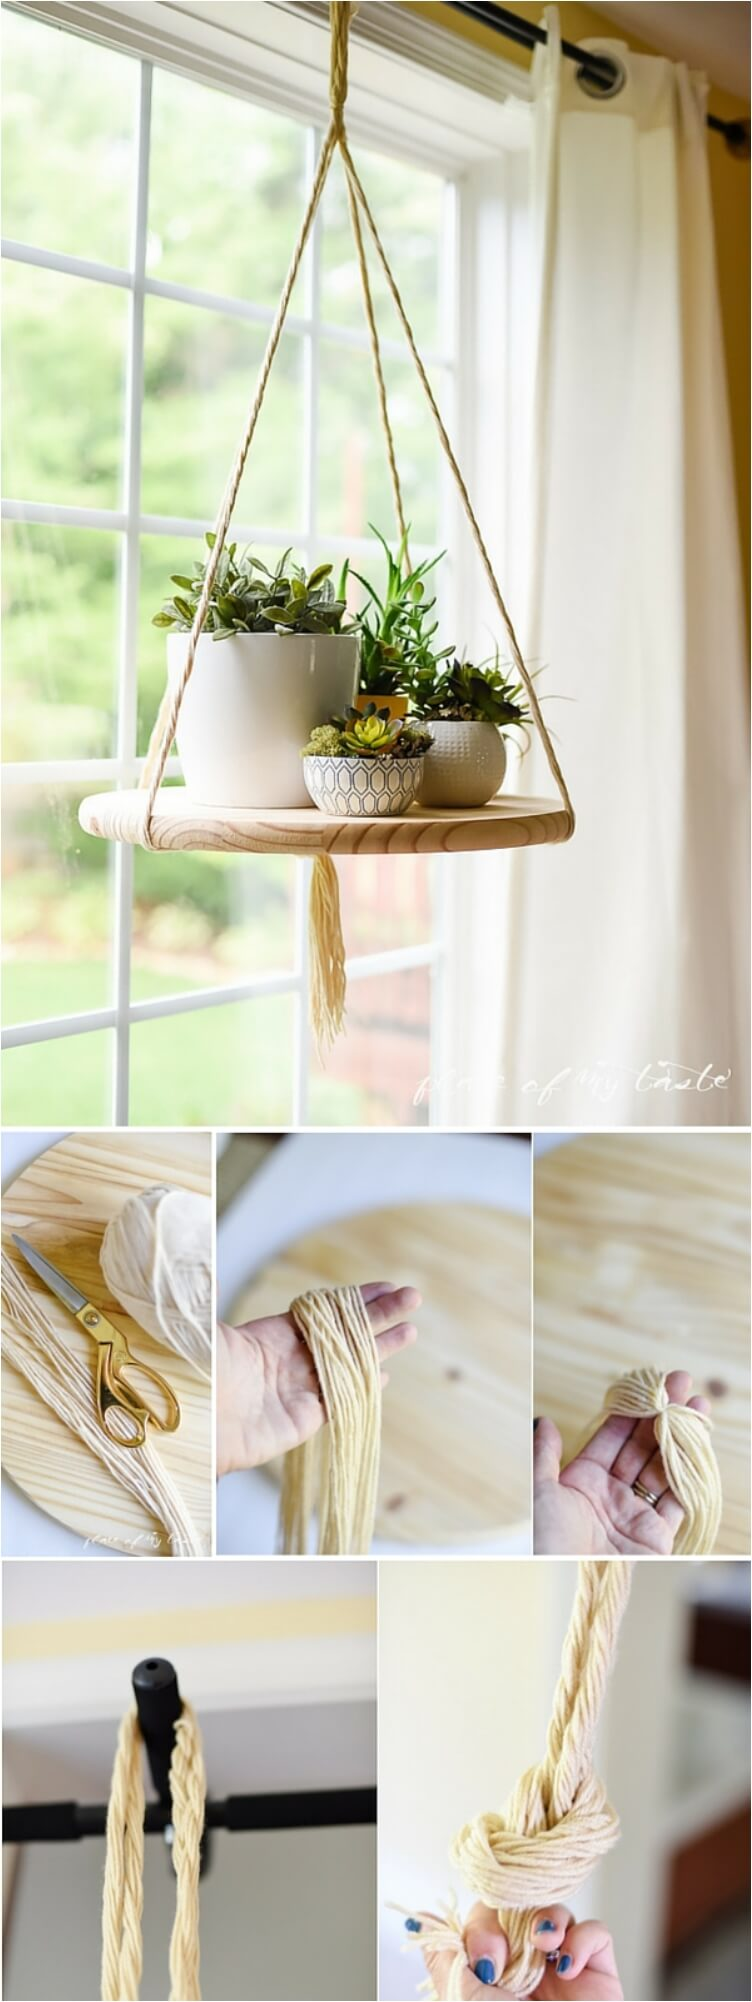 A Rope Hanging Shelf Idea for Plants